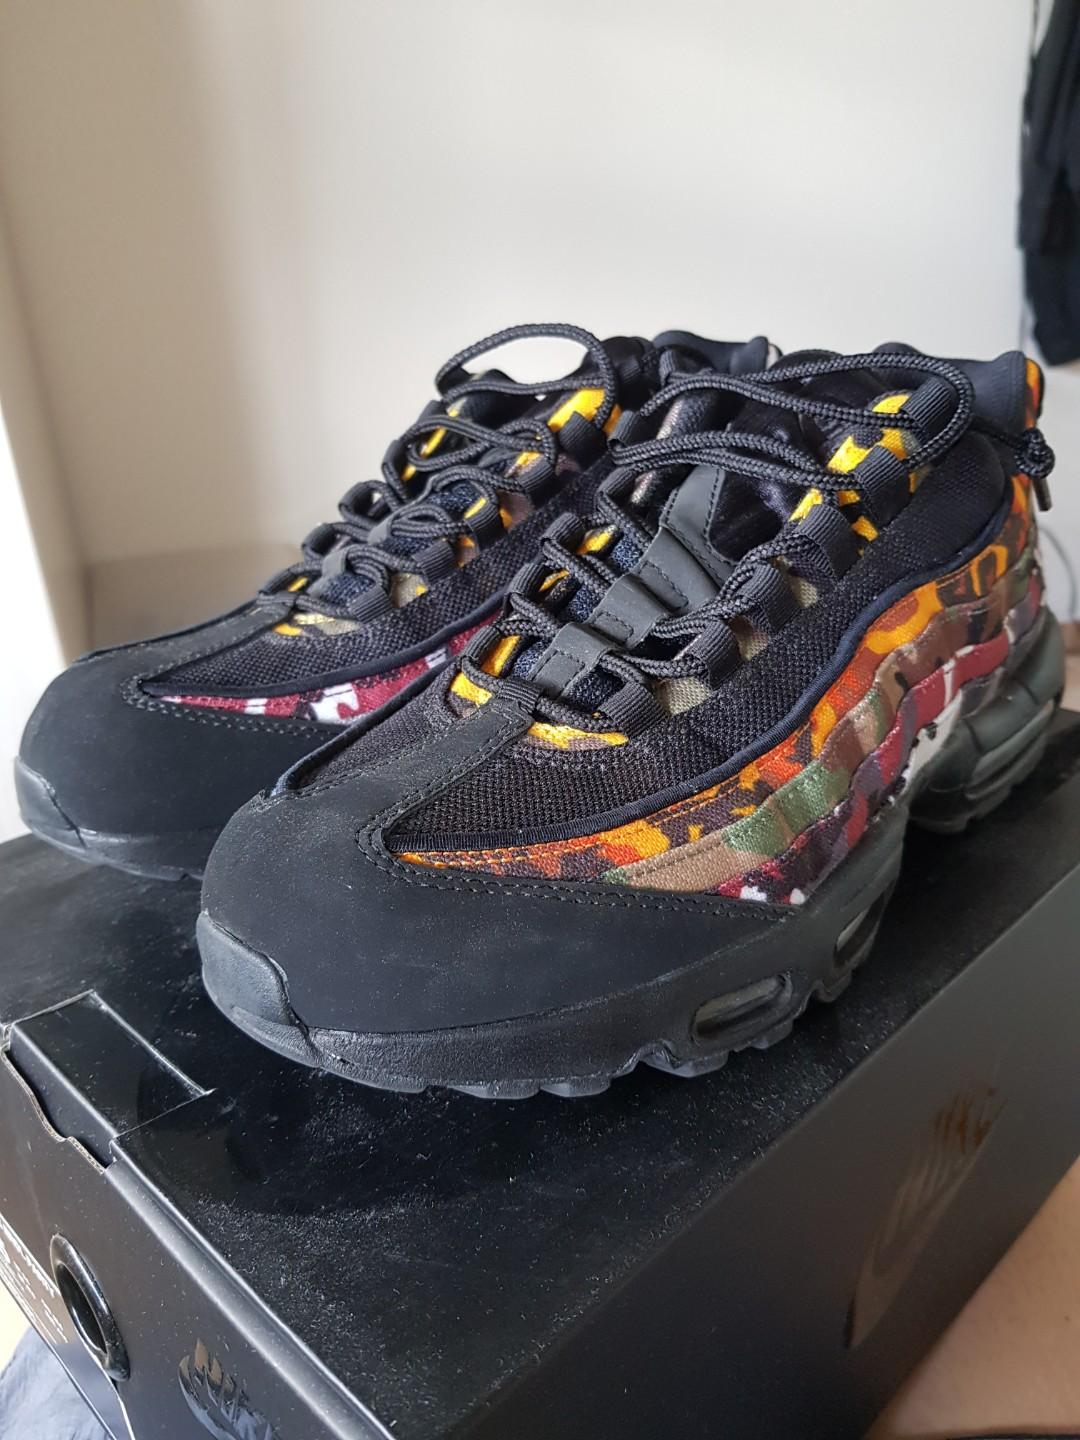 low priced 704b4 4d603 Nike Air Max 95 ERDL Party Black, Men's Fashion, Footwear ...